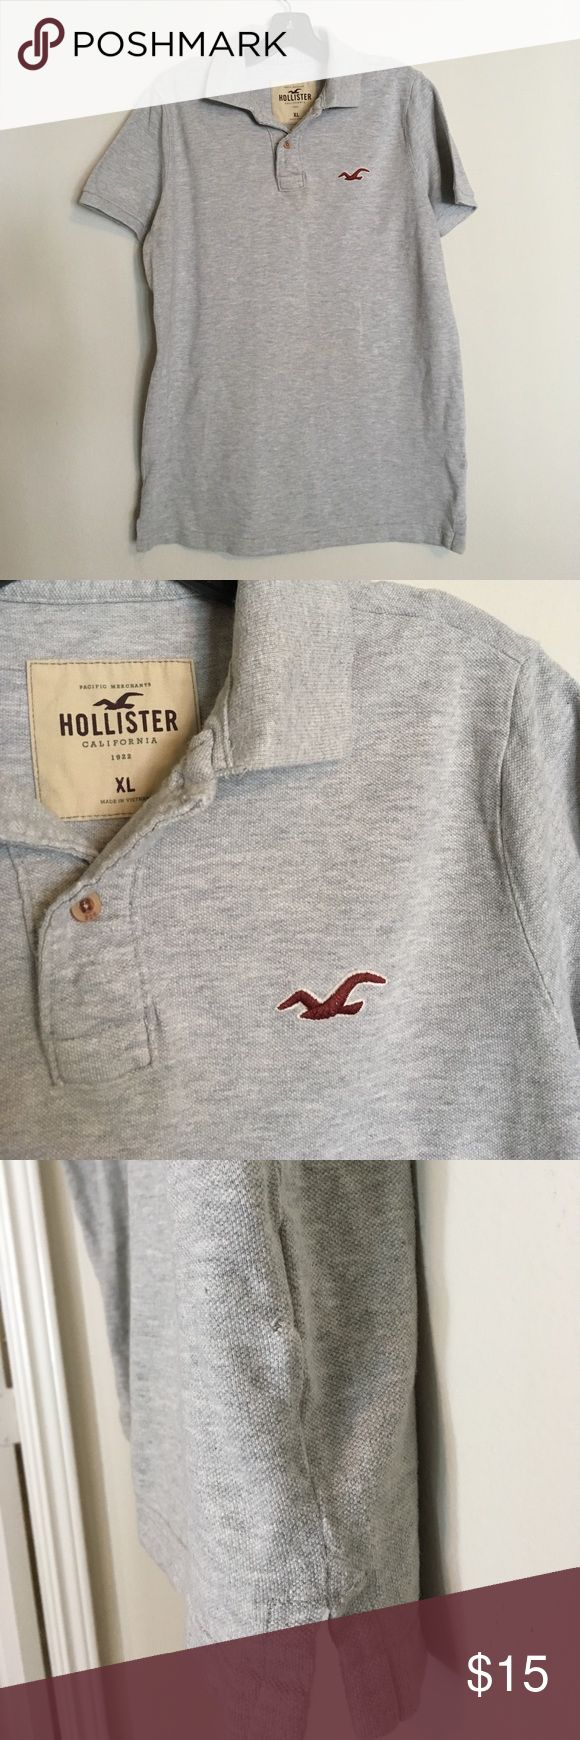 Hollister Polo Collar Shirt A good everyday wear shirt in preloved condition- no stains or damage other then a pinhole near side hem (see photo). I'm open to offers. This brand runs small- labeled xl, but I'm listing it as a small. Hollister Shirts Polos